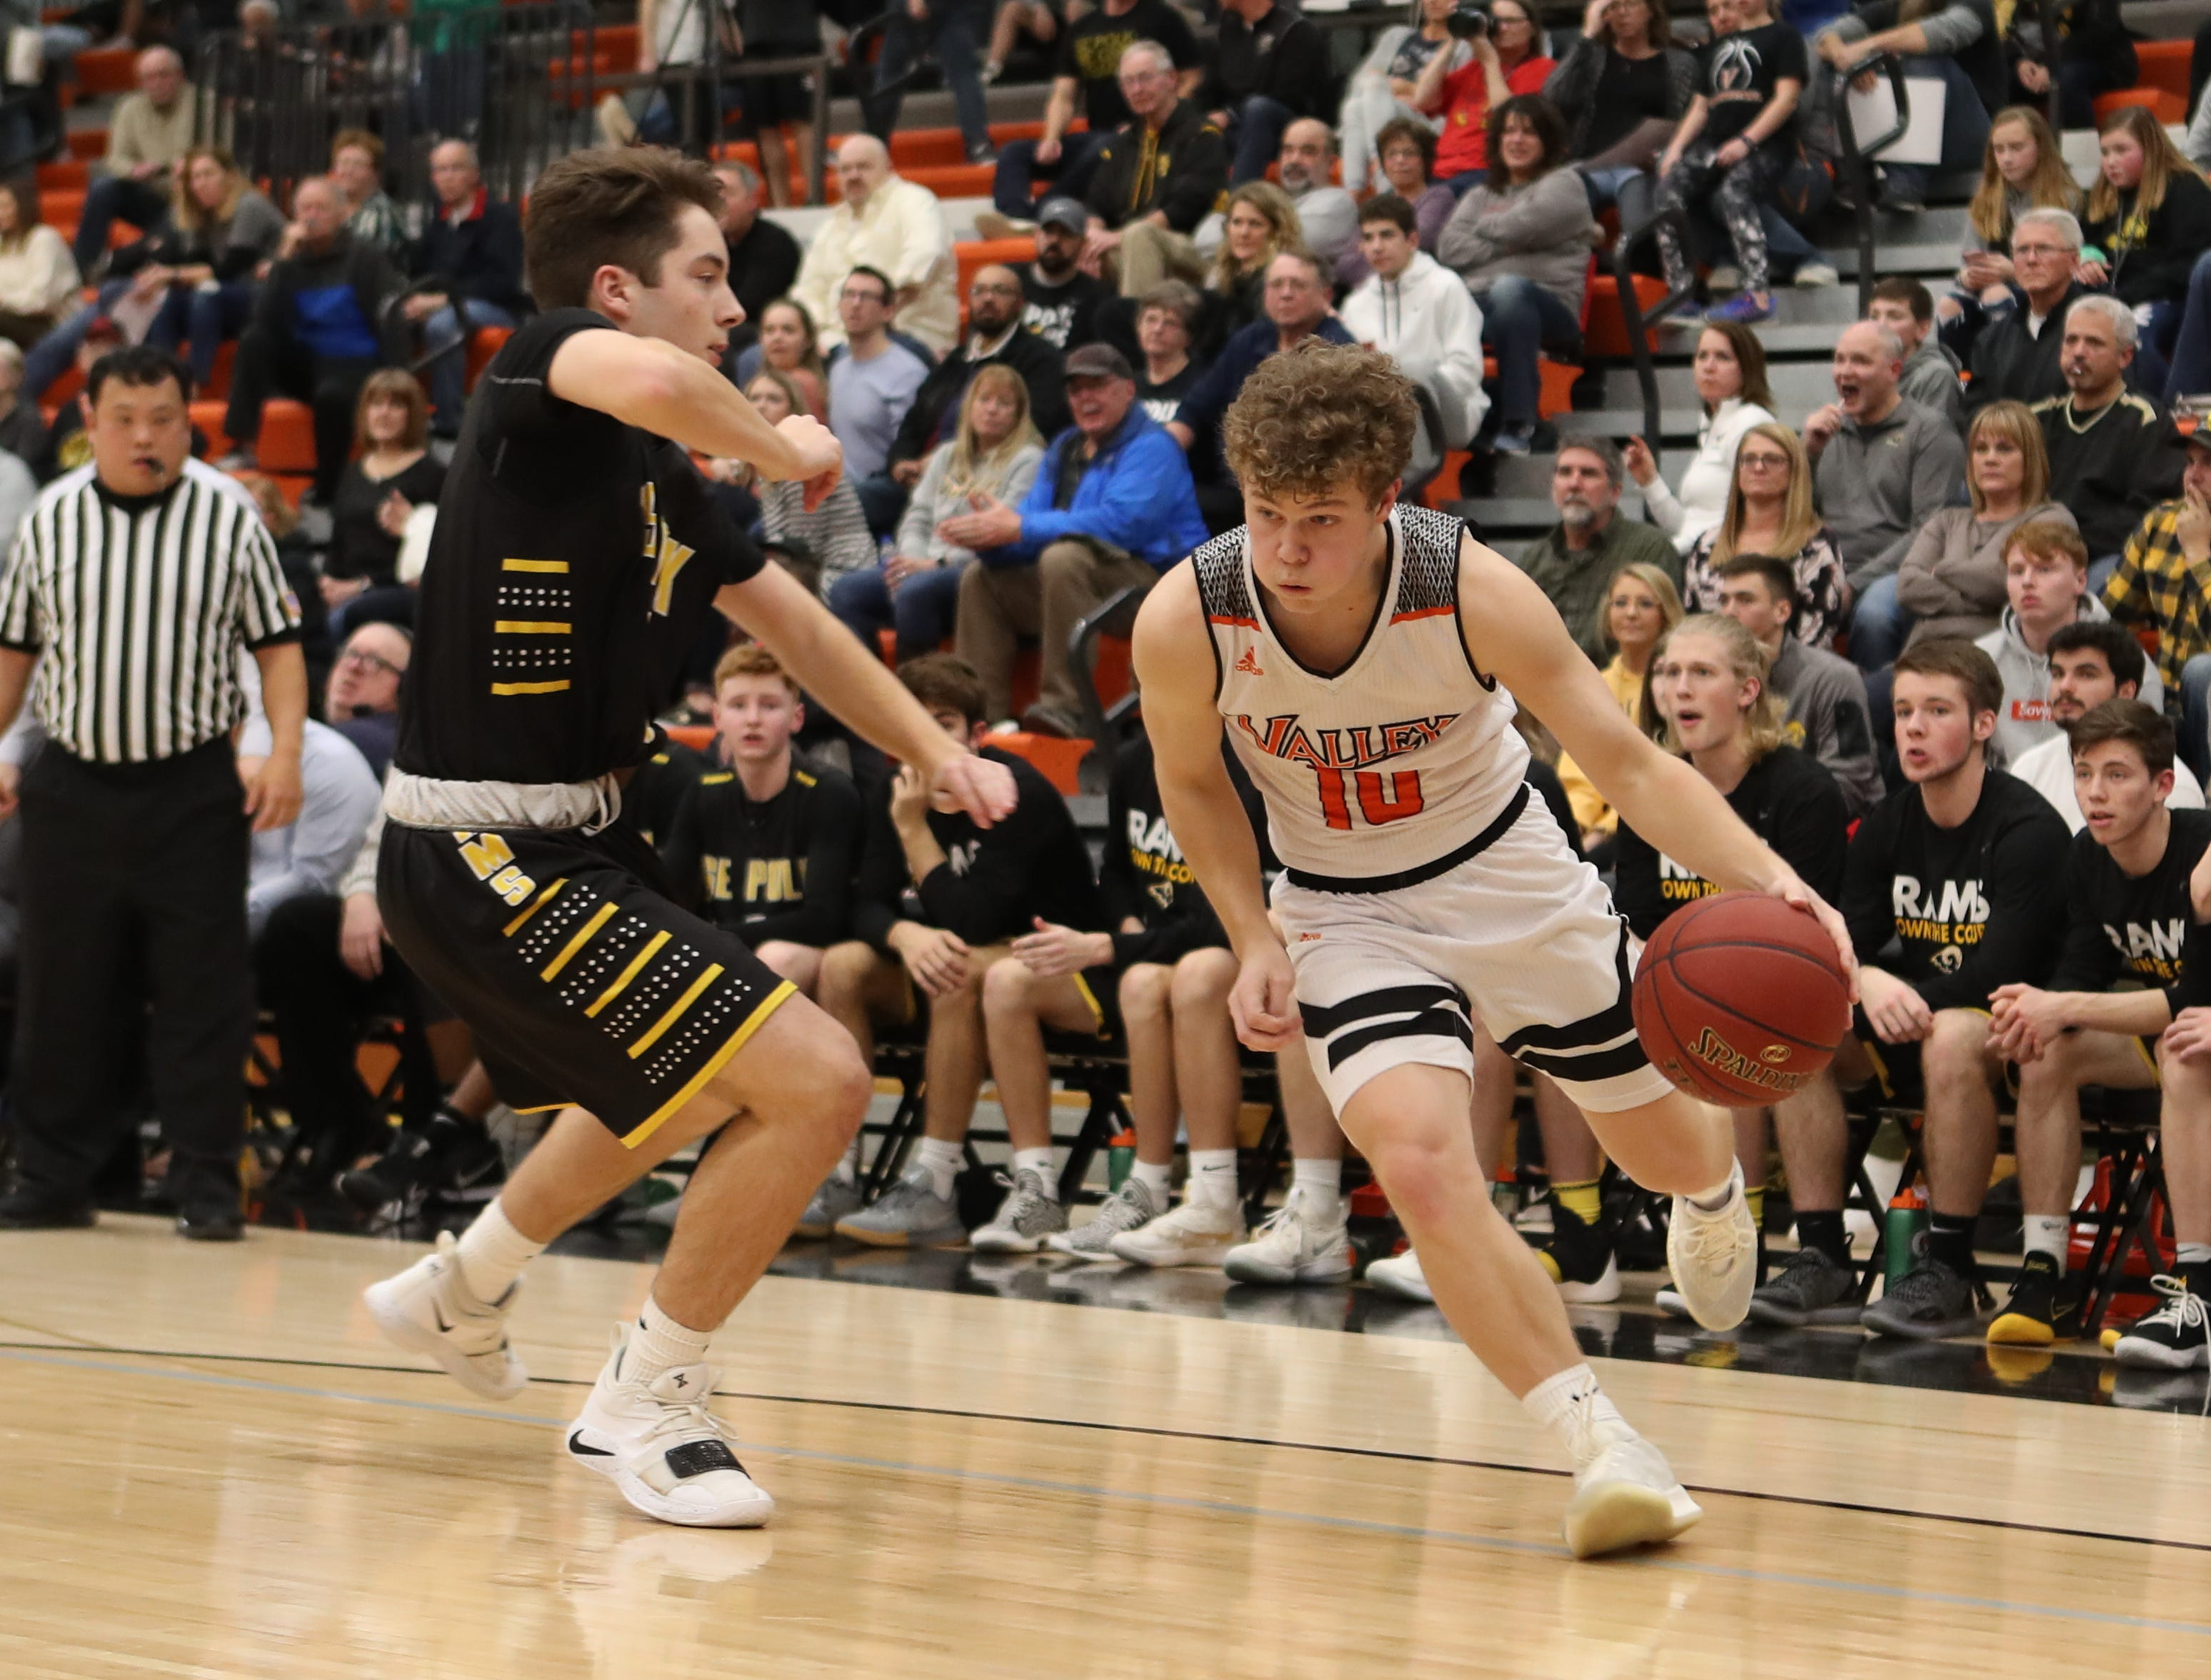 Valley Tigers' Sam Stevens (10) drives baseline against the Southeast Polk Rams during a boys basketball game at Valley High School on Jan. 11, 2019.